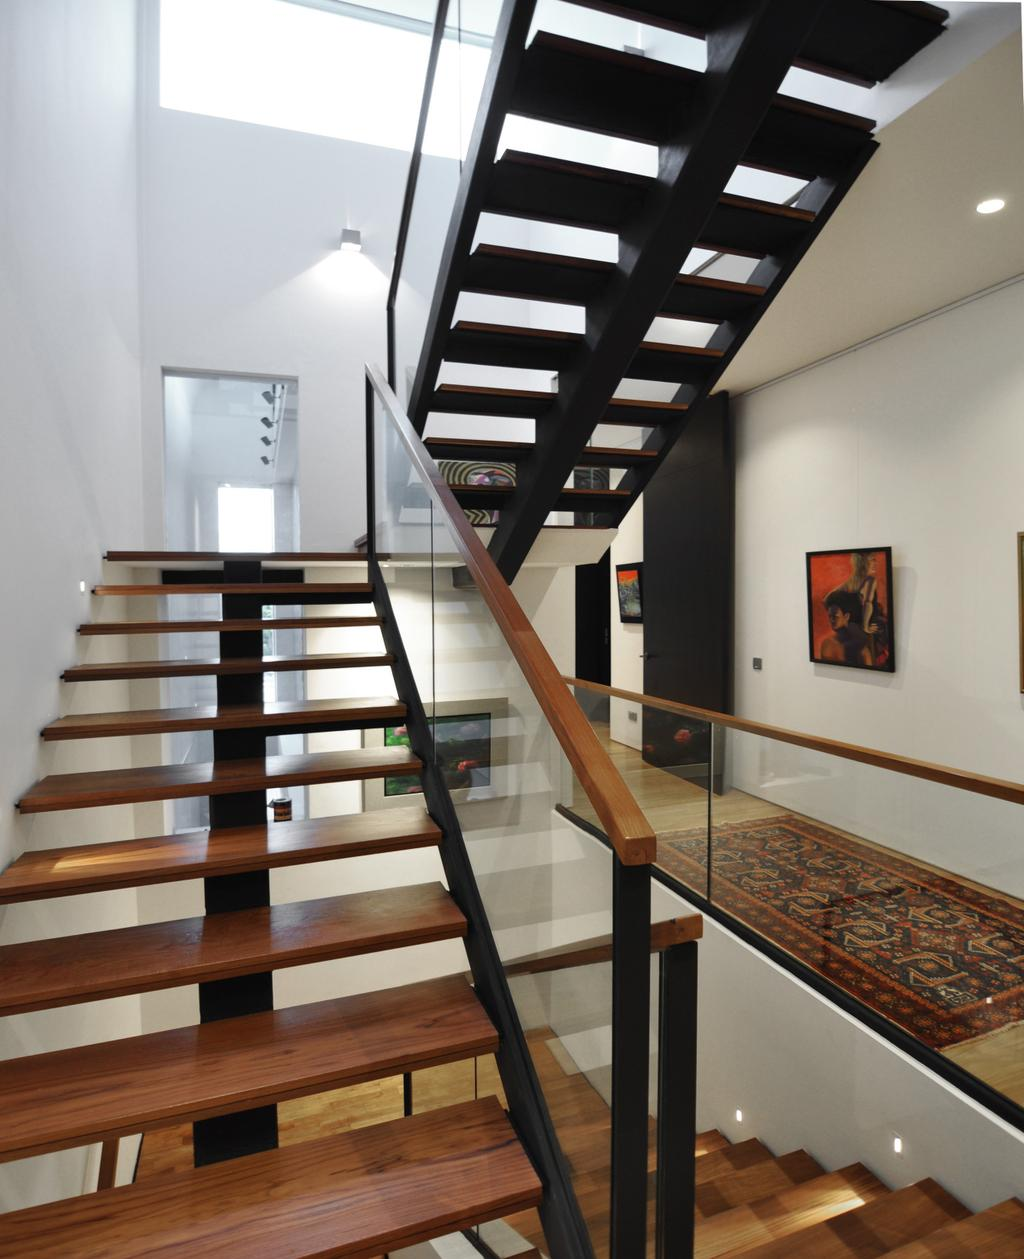 Modern, Landed, Palm Drive, Architect, Kite Studio Architecture, Banister, Handrail, Staircase